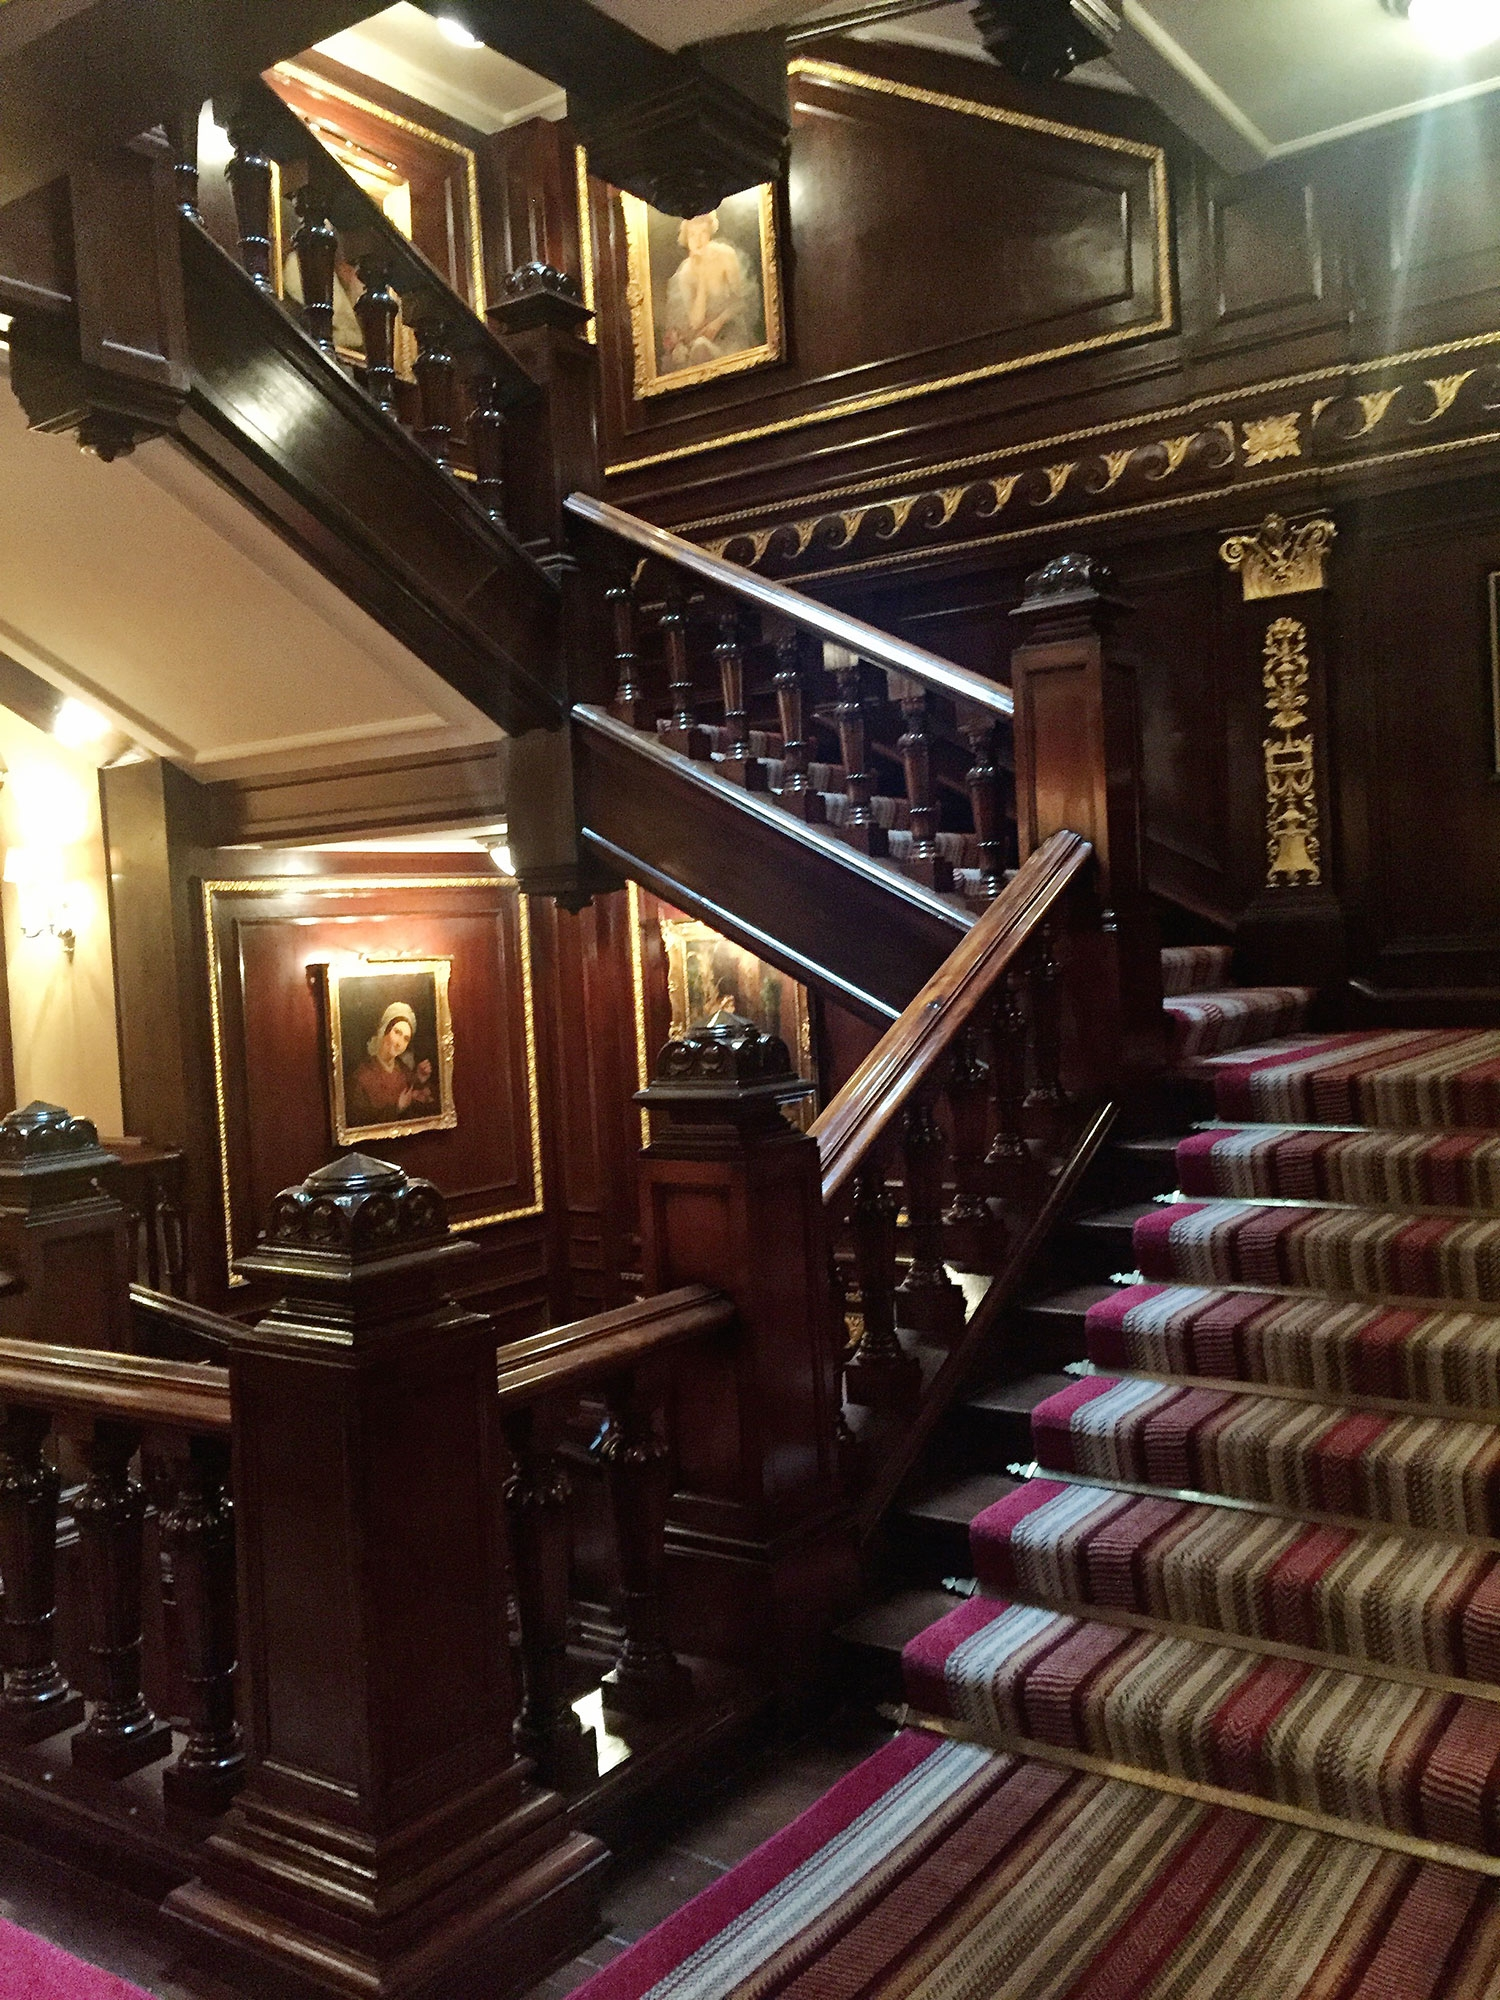 The winding staircase of The Connaught is a rich wood with a striped runner. June 2016